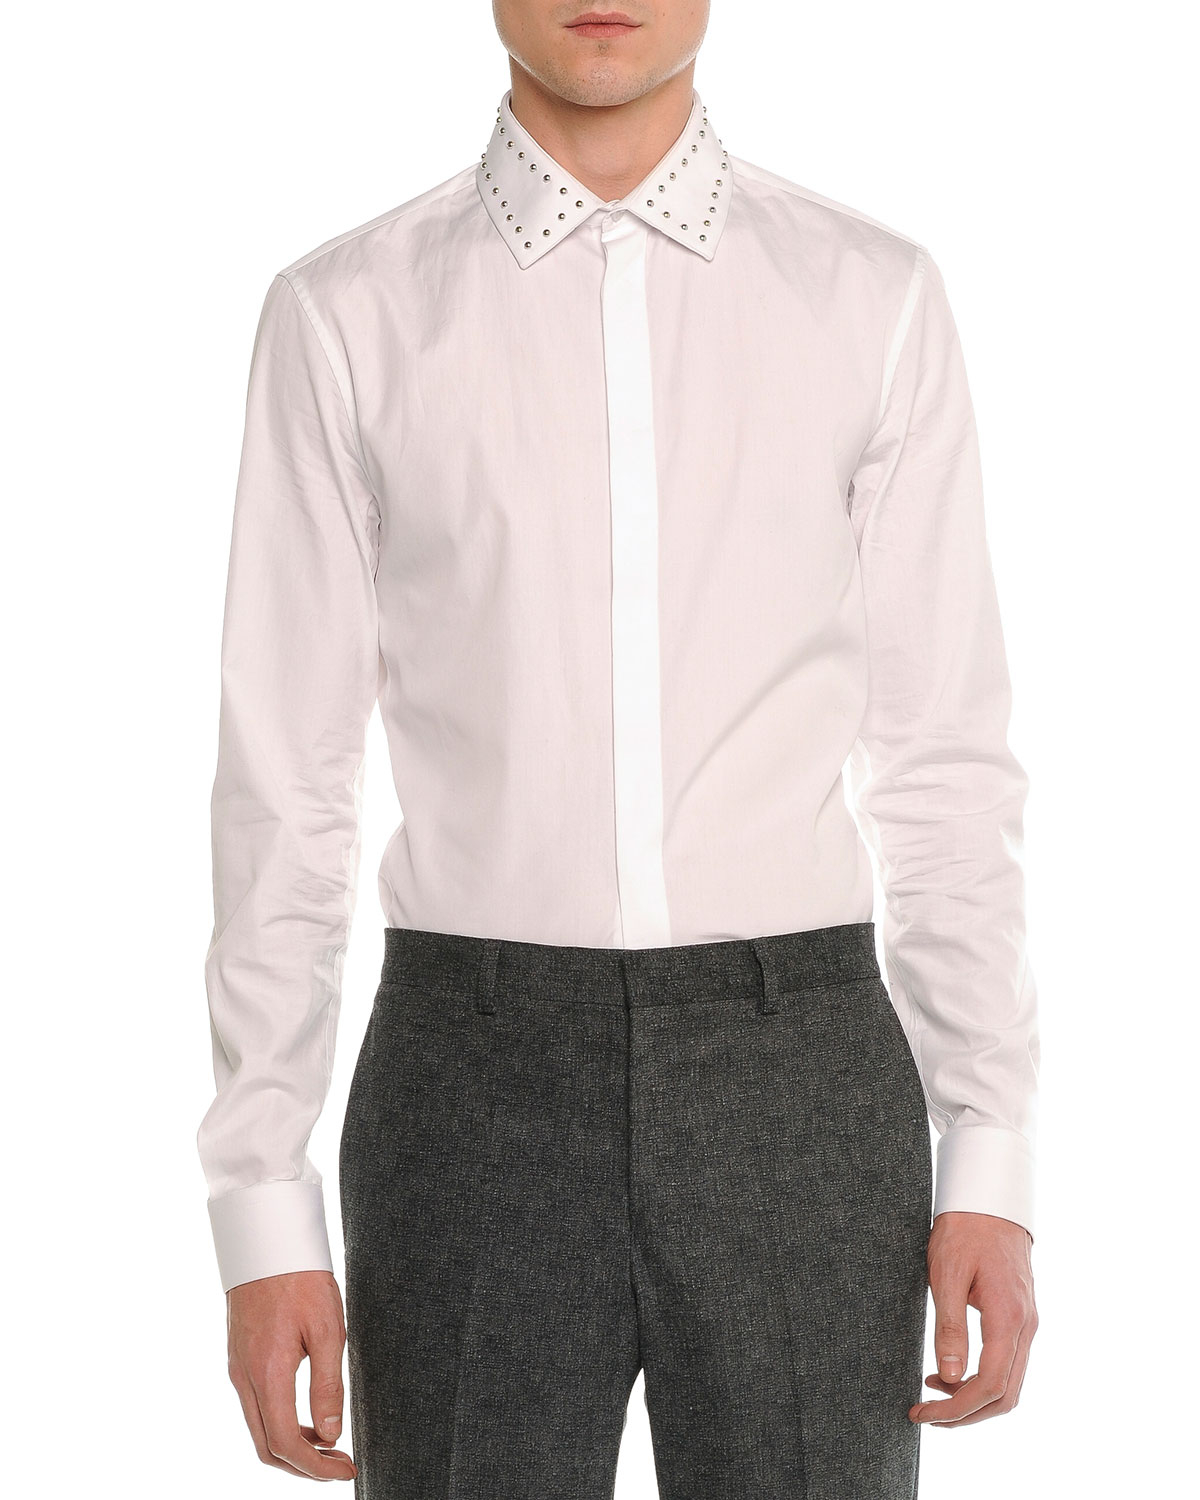 Lyst Givenchy Studded Collar Long Sleeve Shirt In White